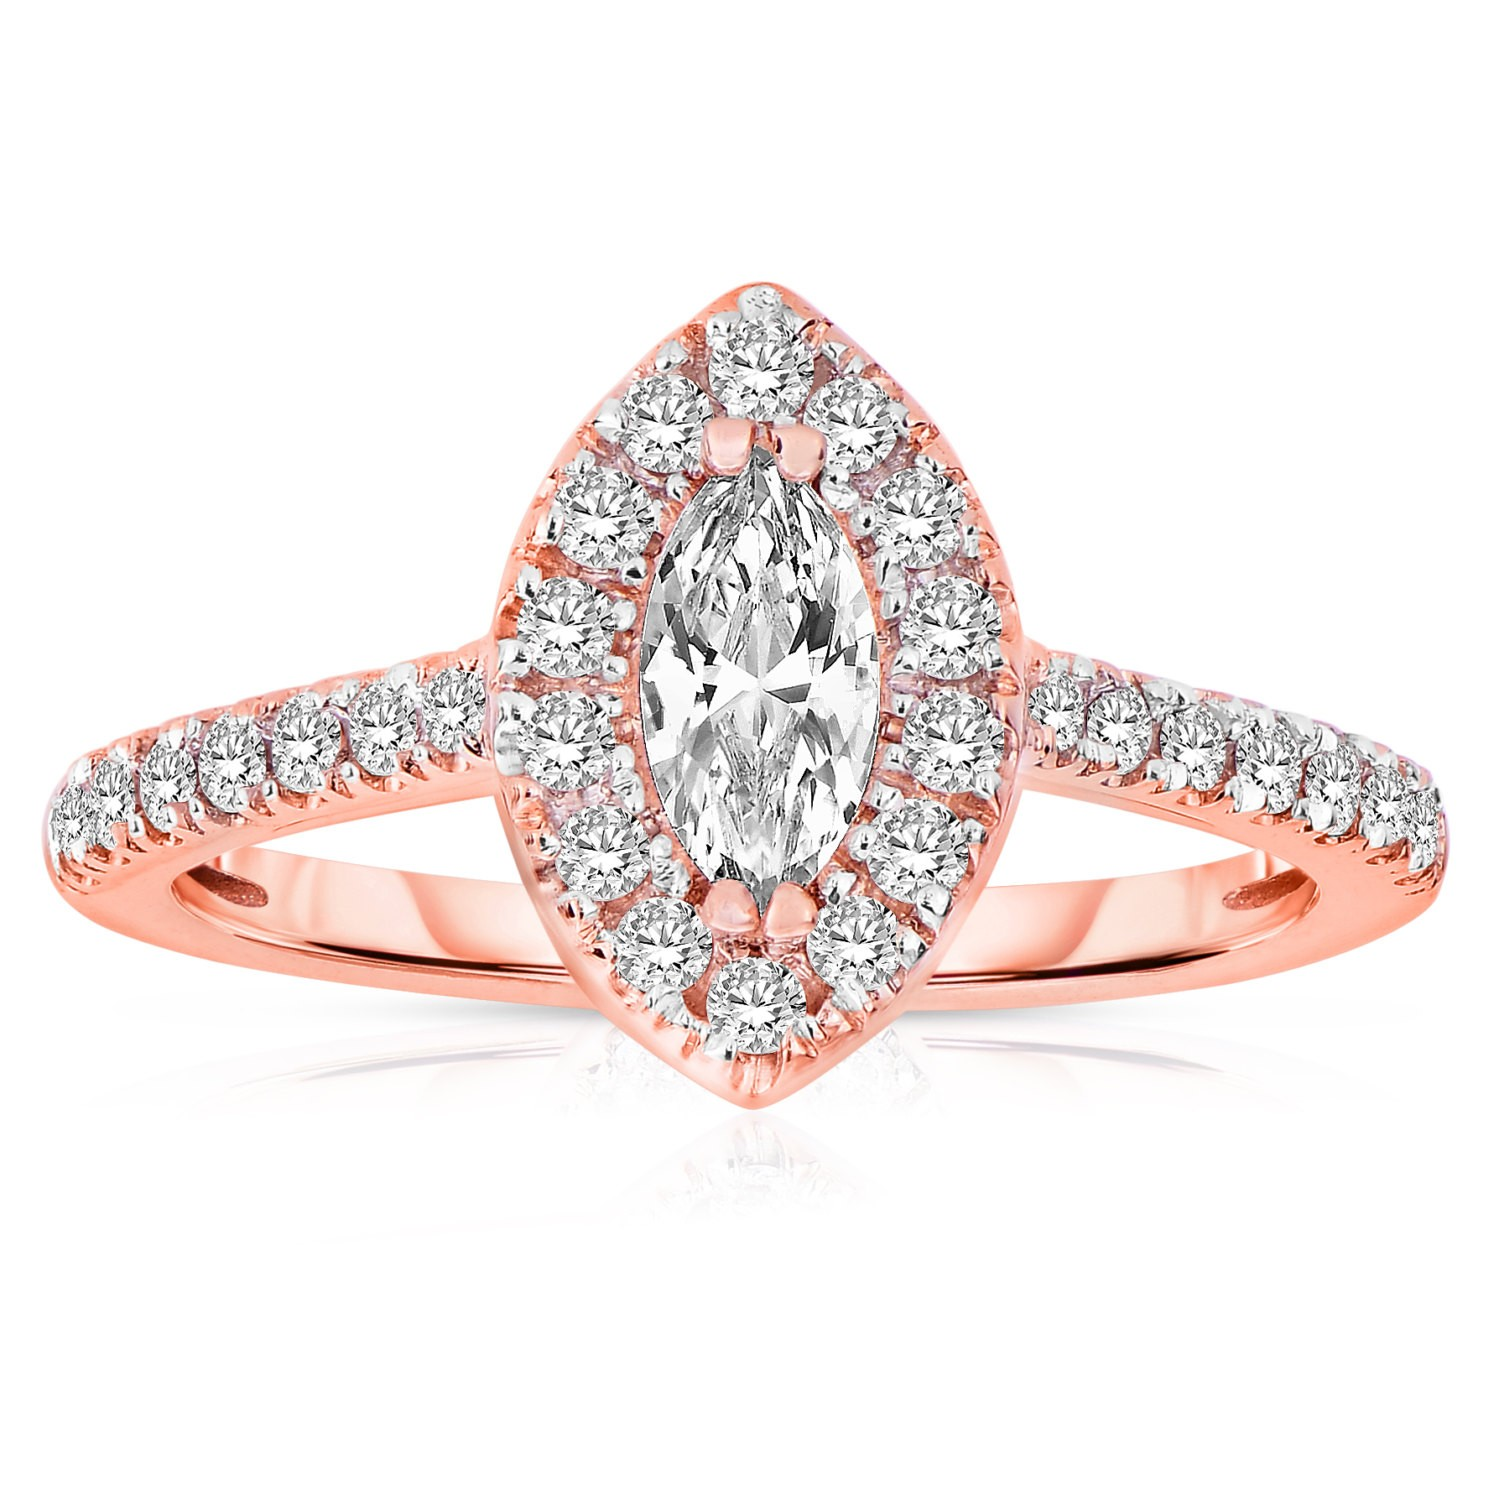 Half Carat Marquise cut Halo Diamond Engagement Ring in Rose Gold JeenJewels